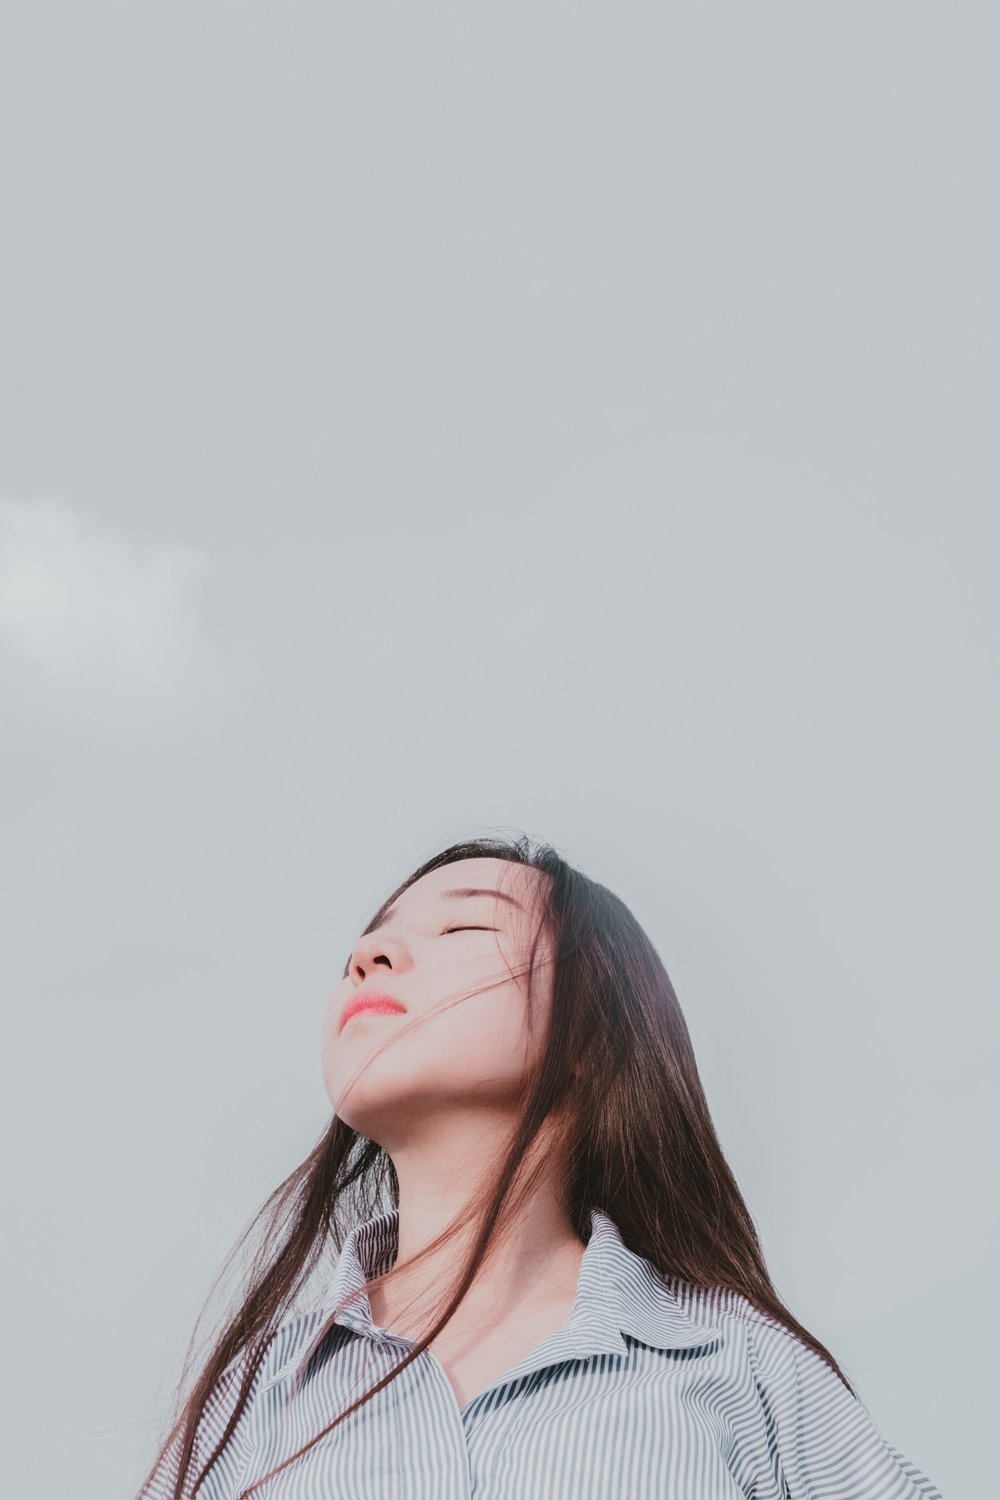 Girl with long hair,looking up into the sky with eyes closed